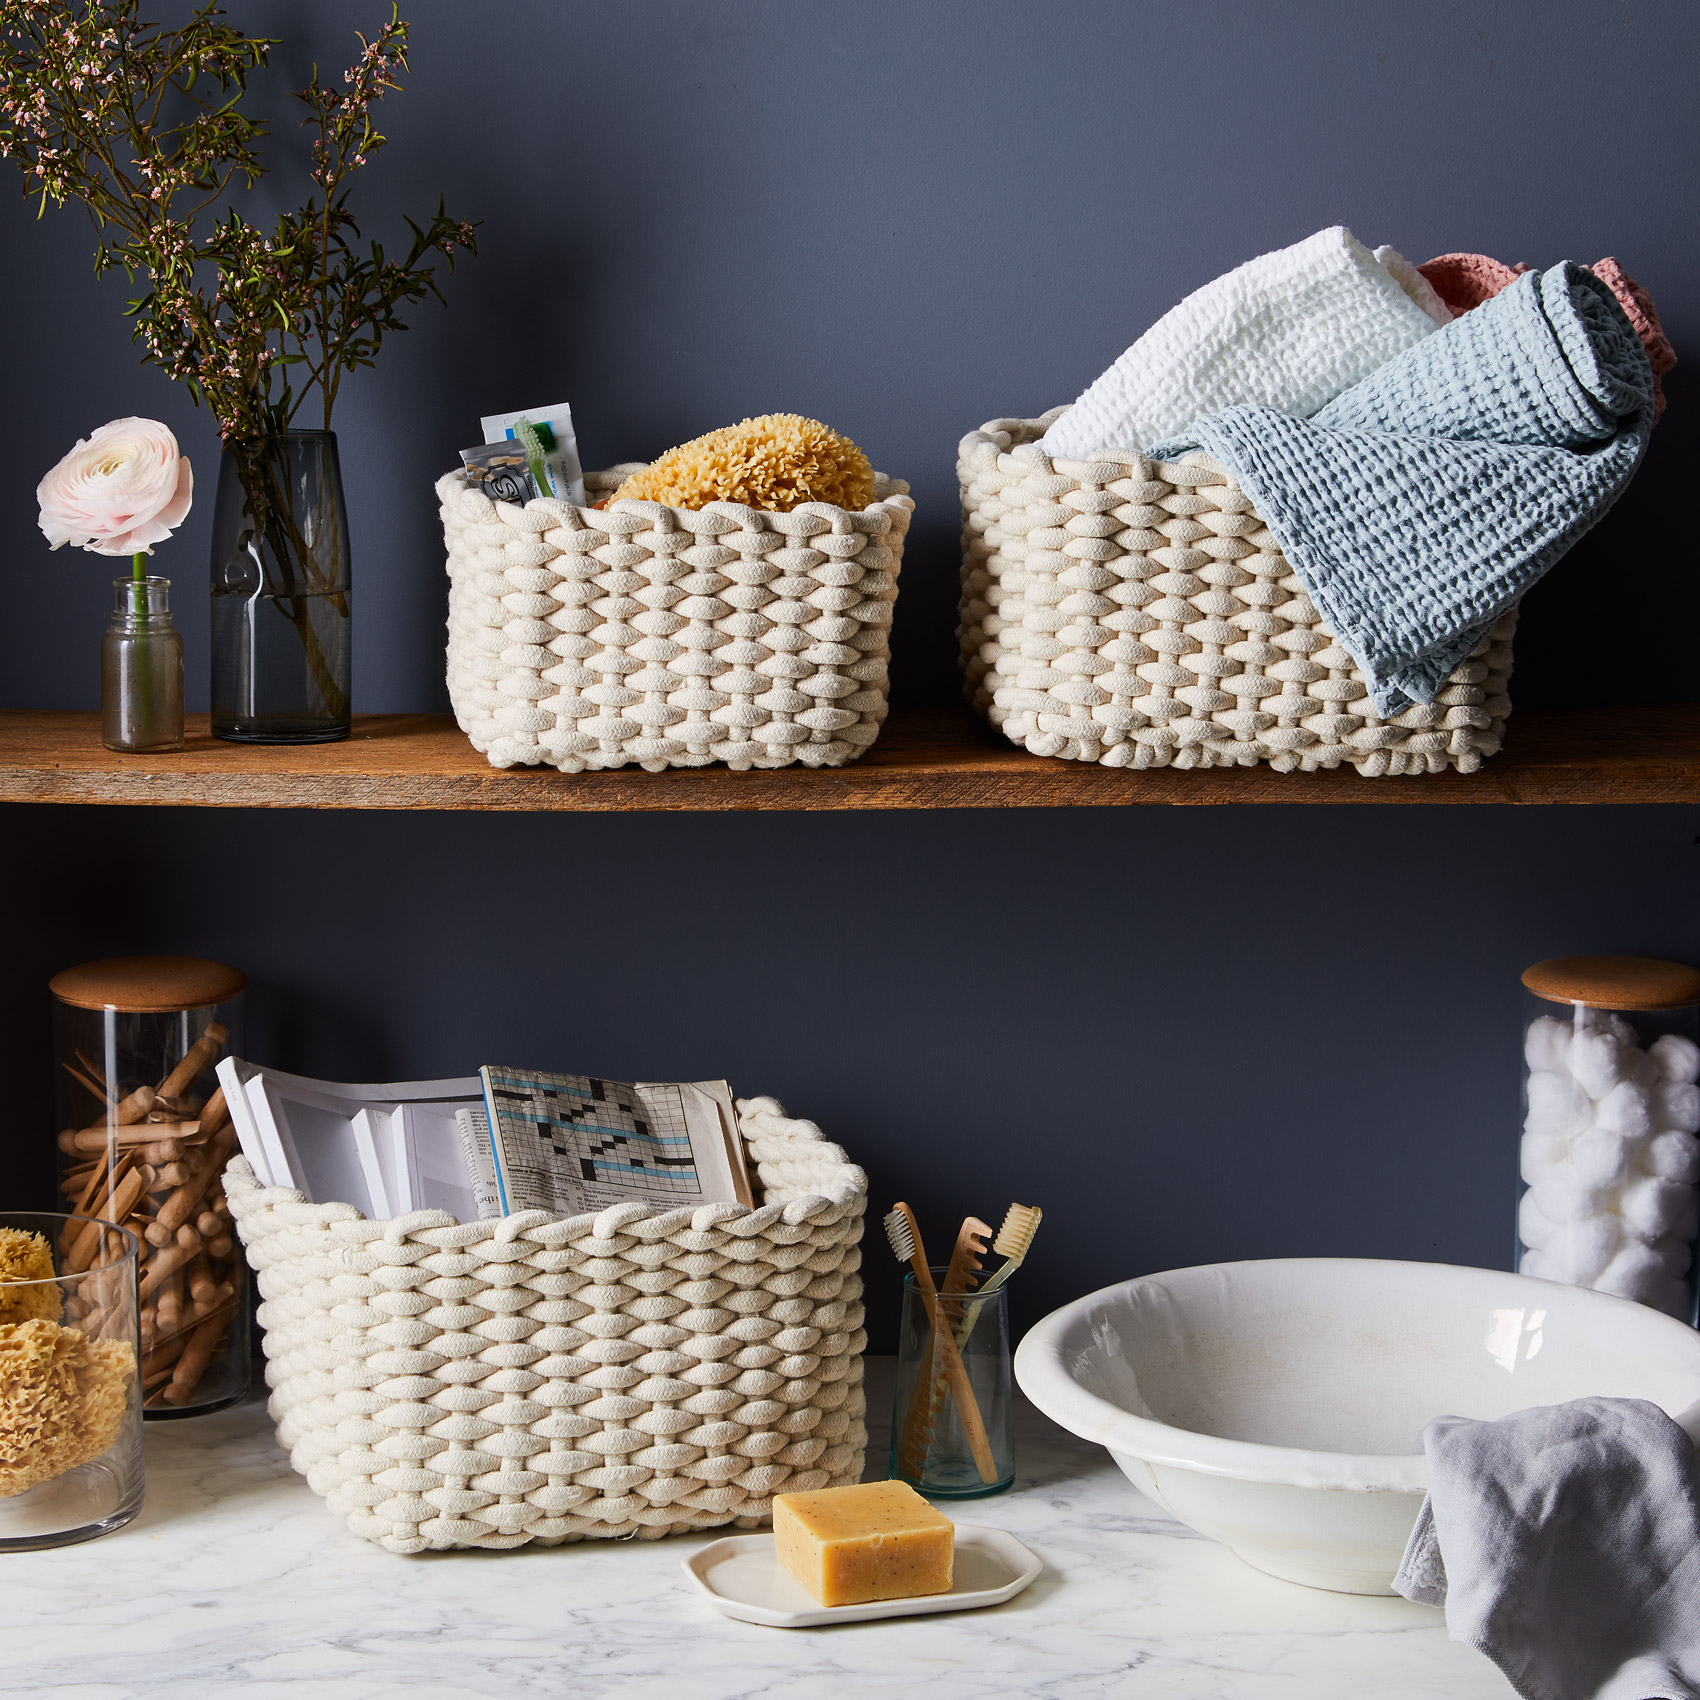 blomus_cotton-crochet-nesting-baskets_home_ty-mecham_food52